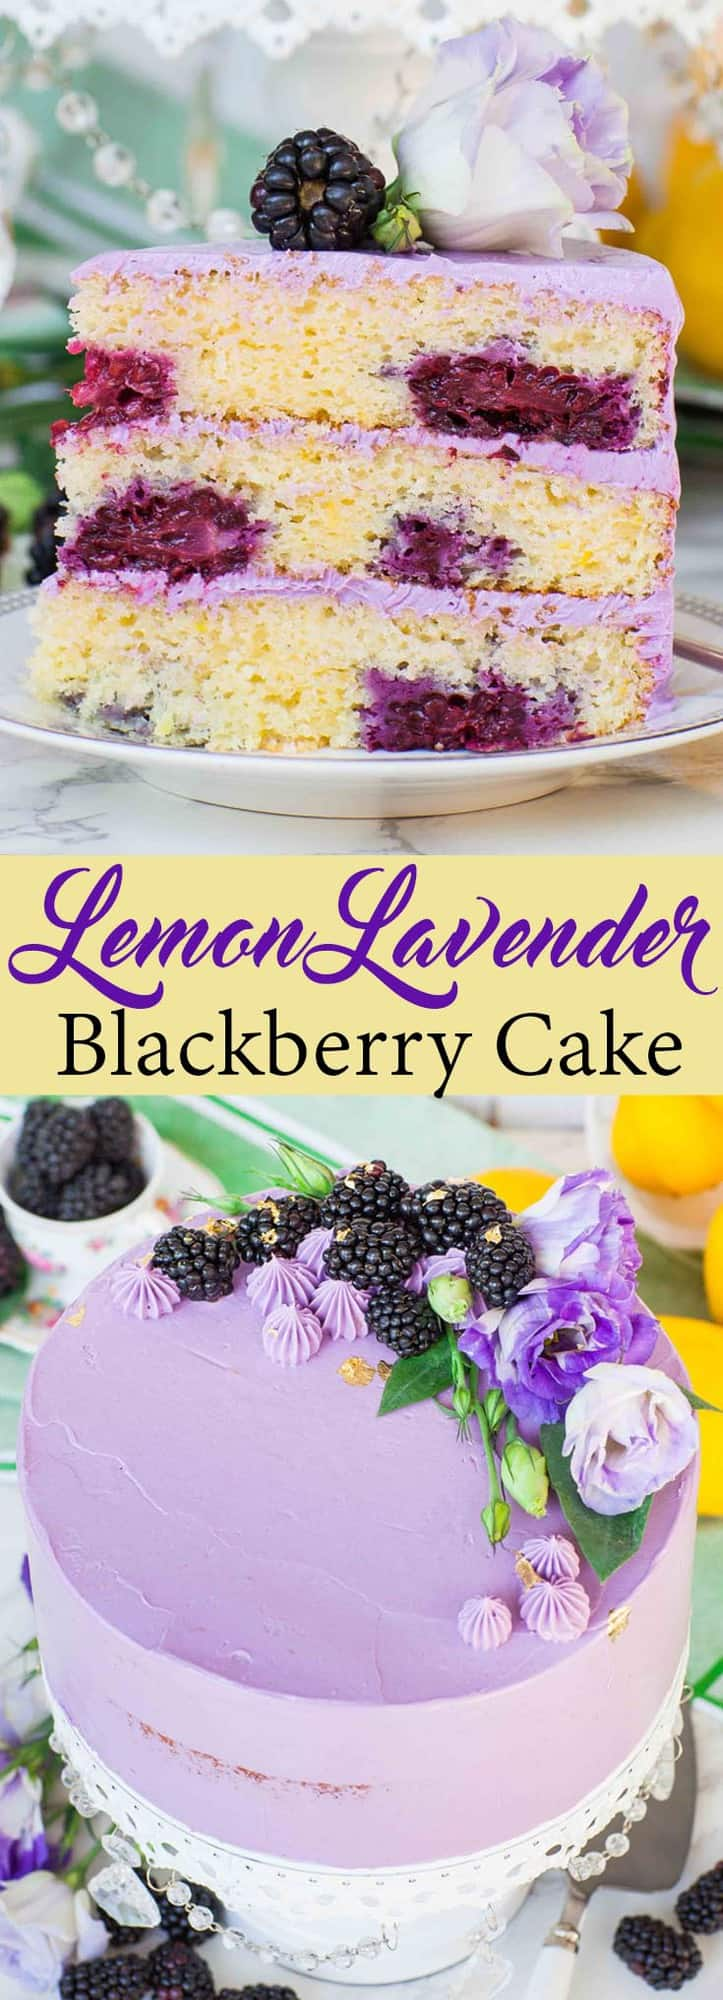 This Lemon Blackberry Cake with lavender French buttercream is the perfect cake for summer! Every bite of this lavender cake is filled with incredible flavor. | natashaskitchen.com